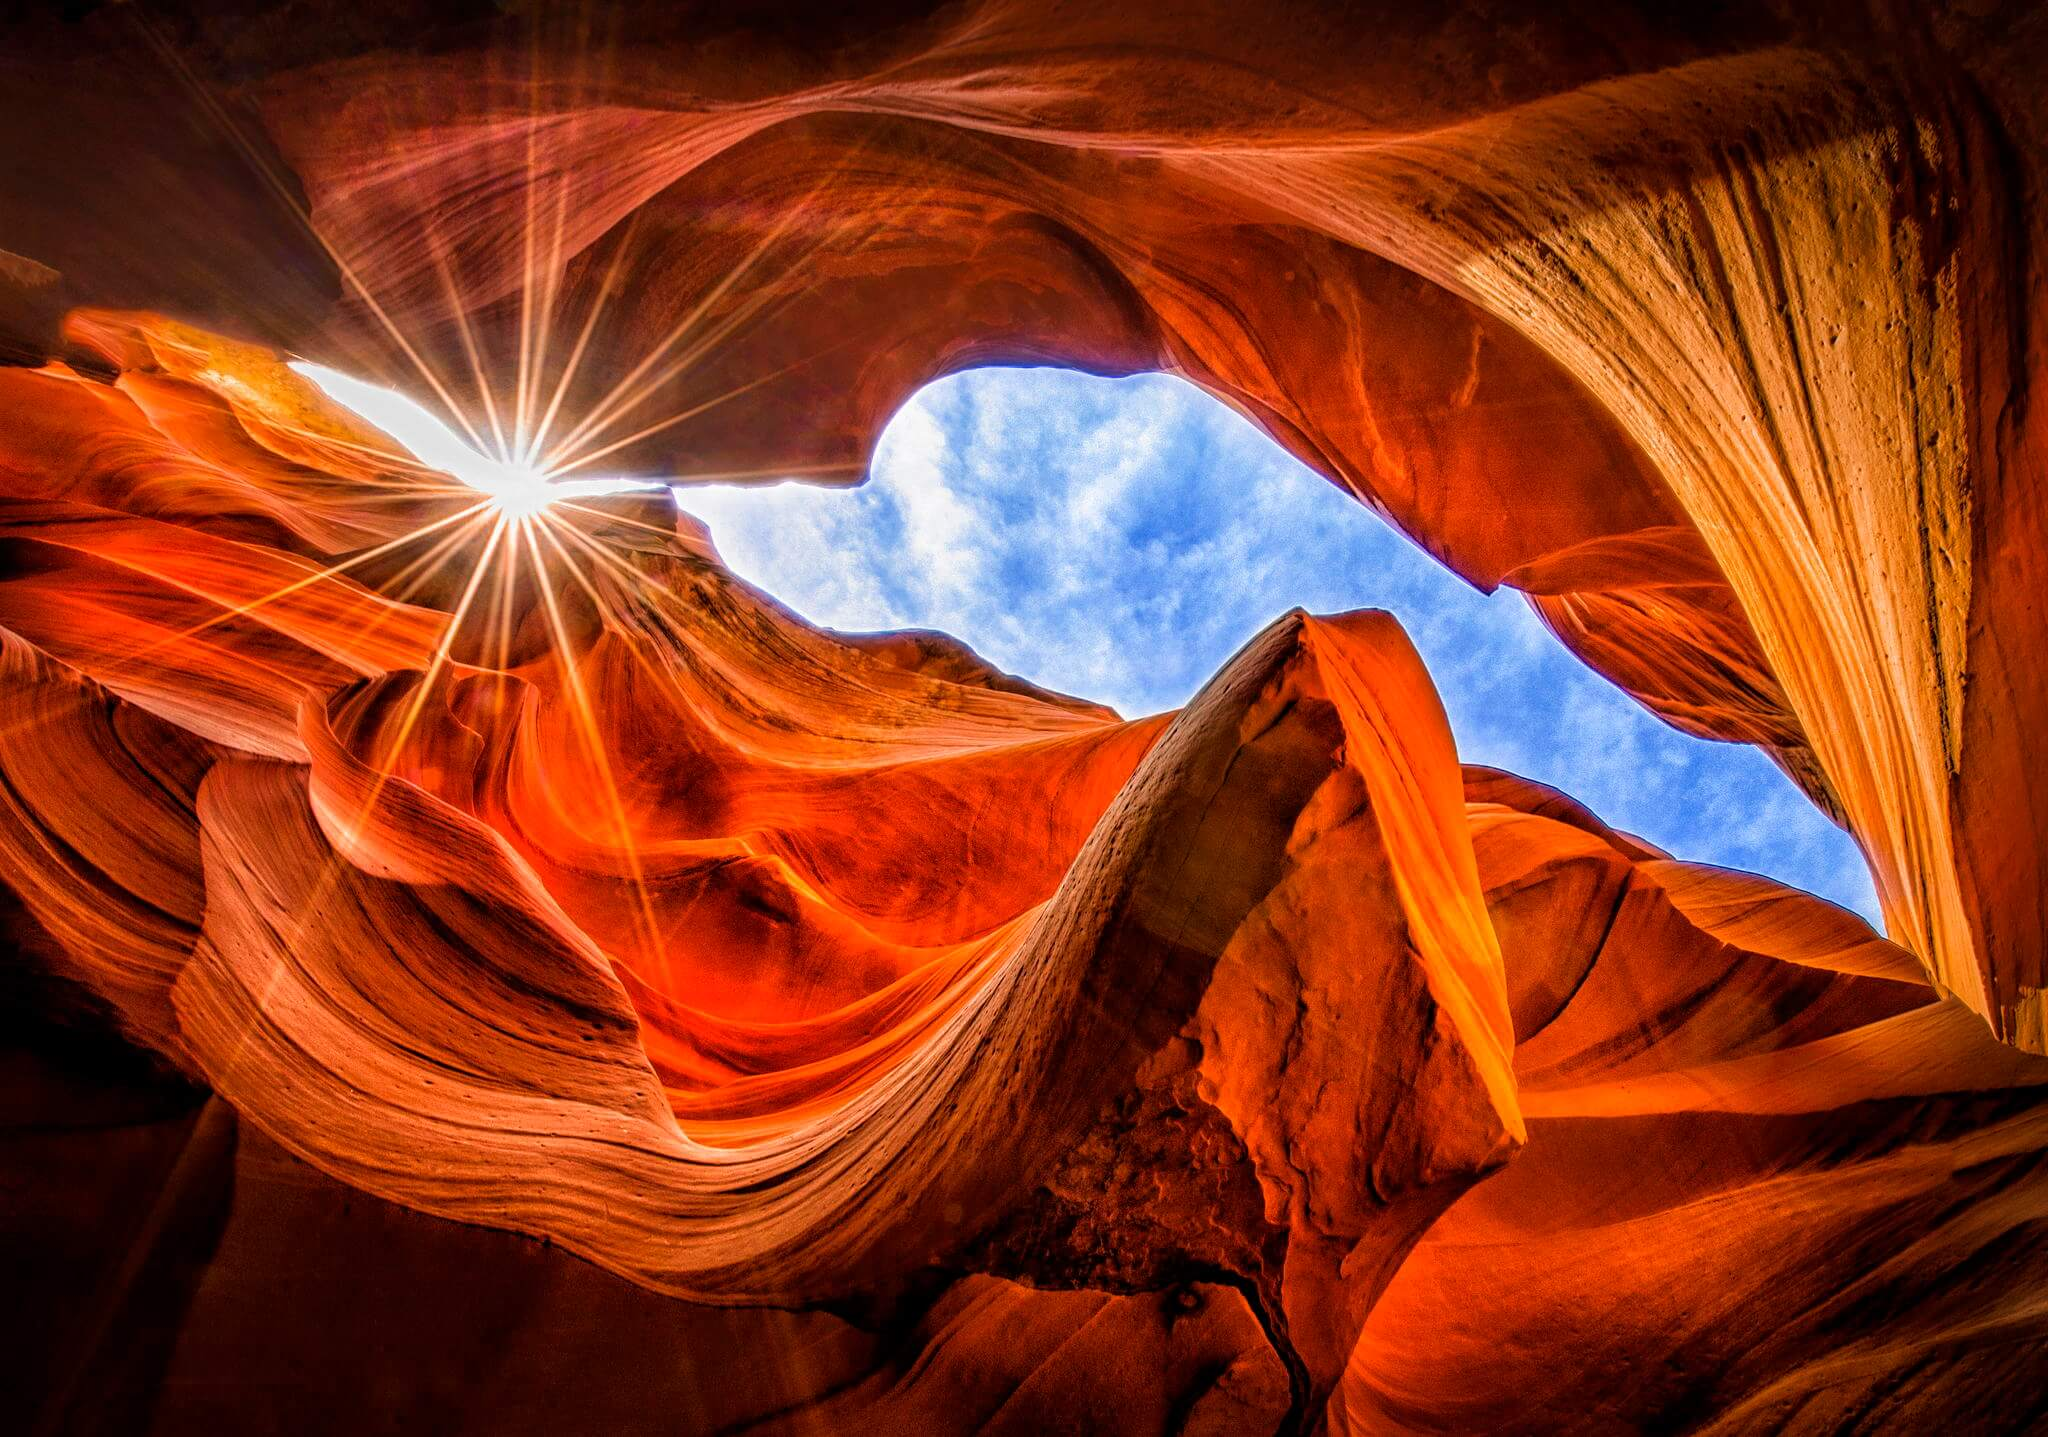 Images of Antelope Canyon like this are hard to get because it's deep inside the canyon. vse-krugom.ru